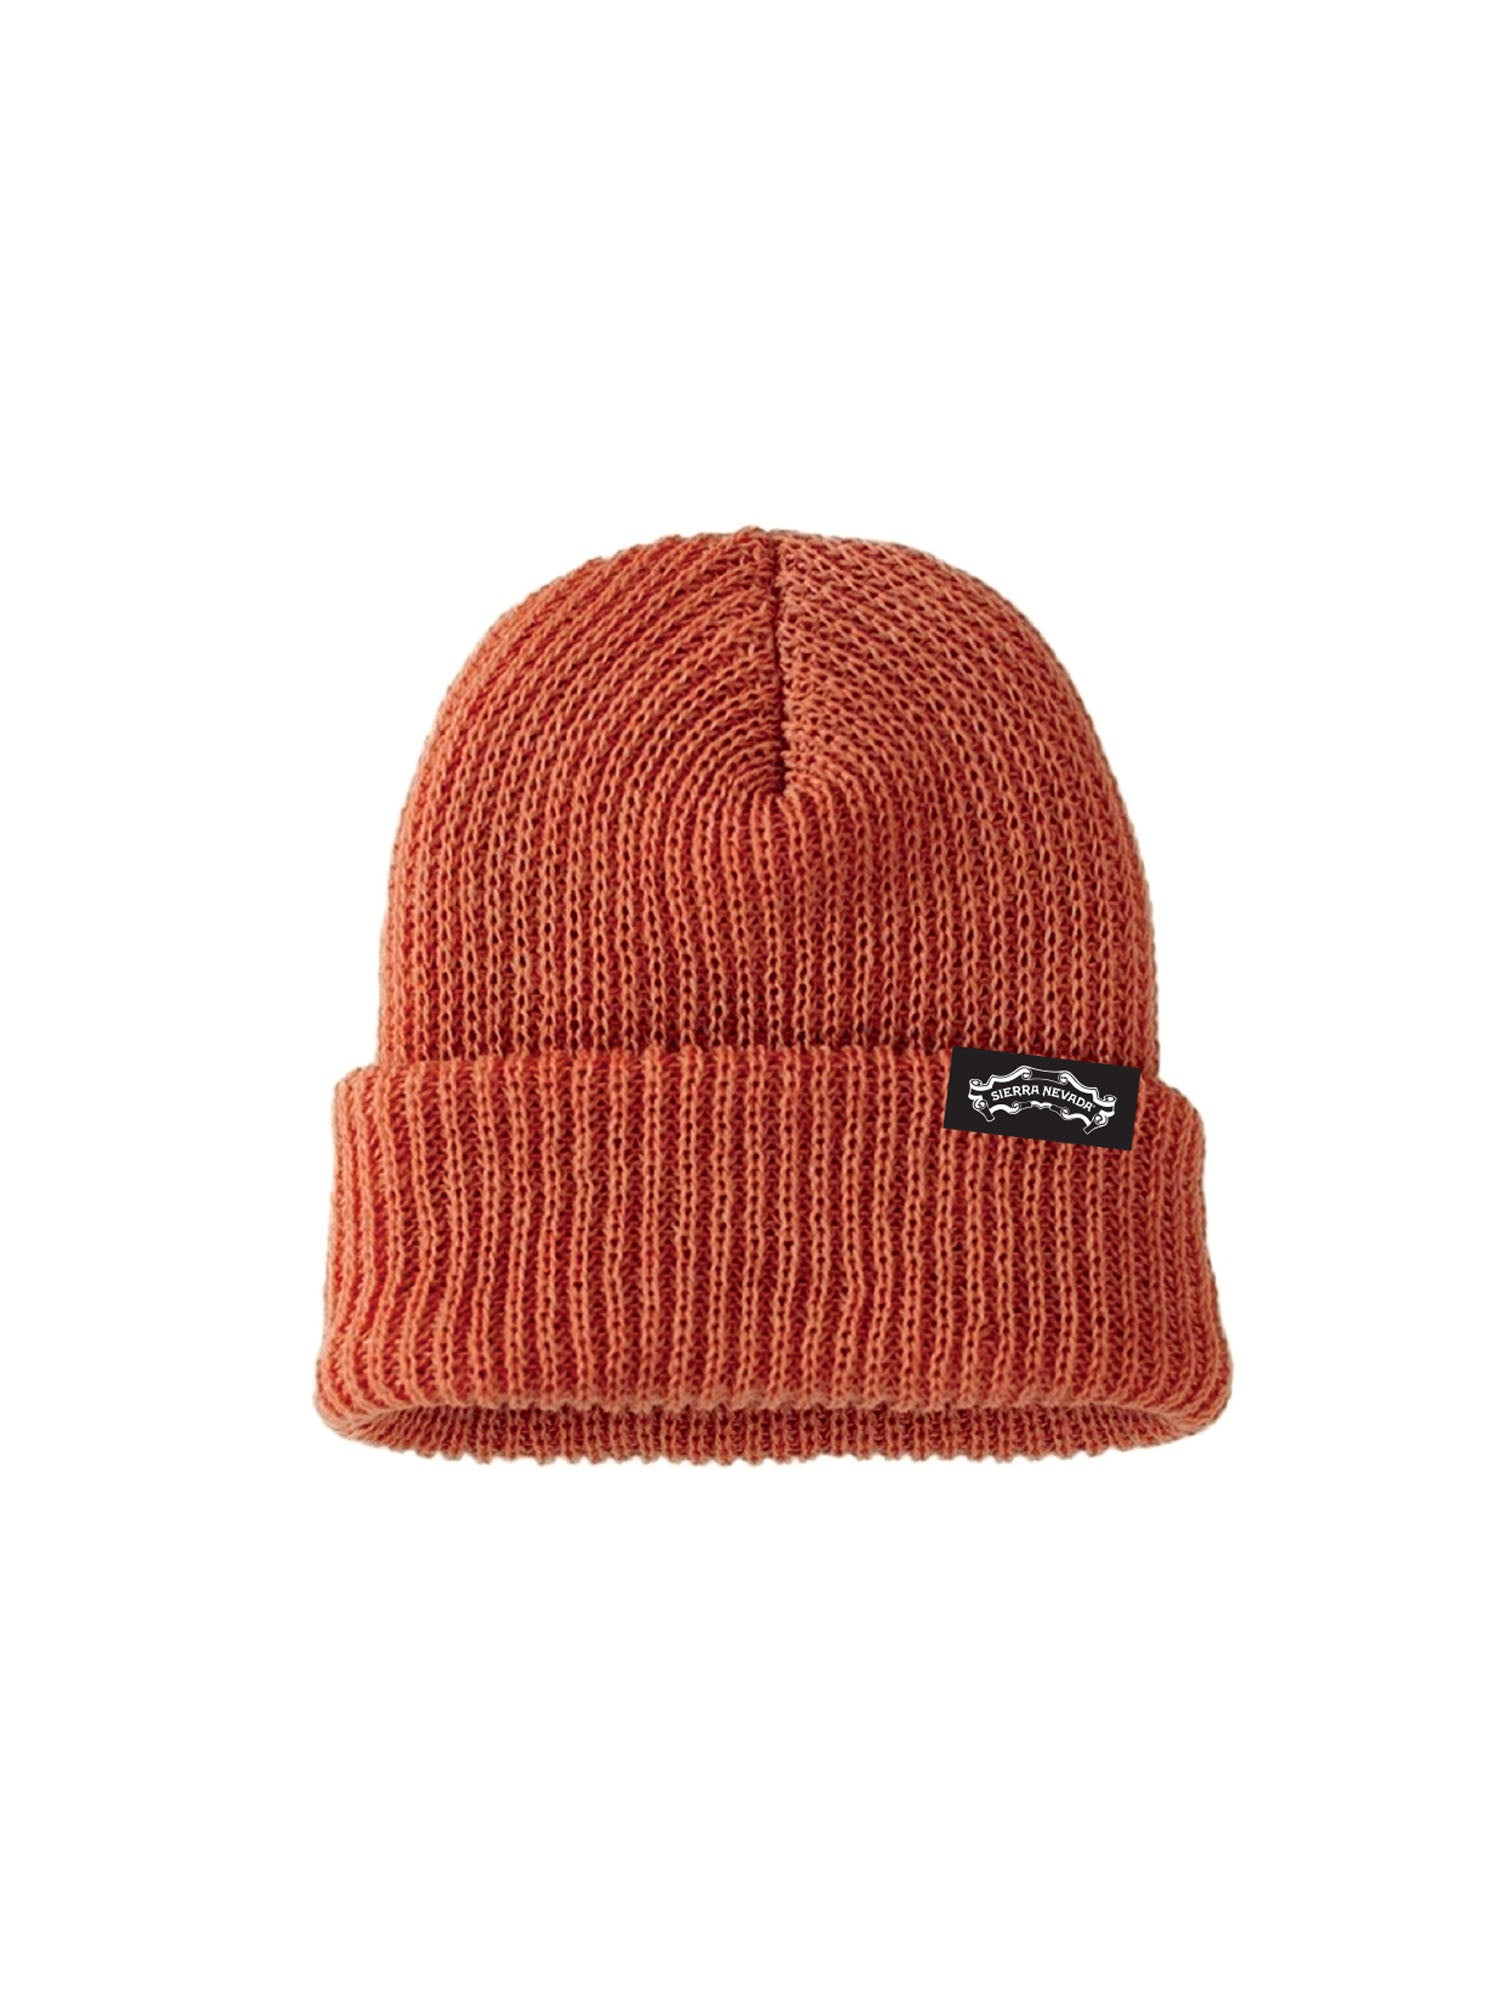 BEANIE- RUST - Anderson Bros Design and Supply